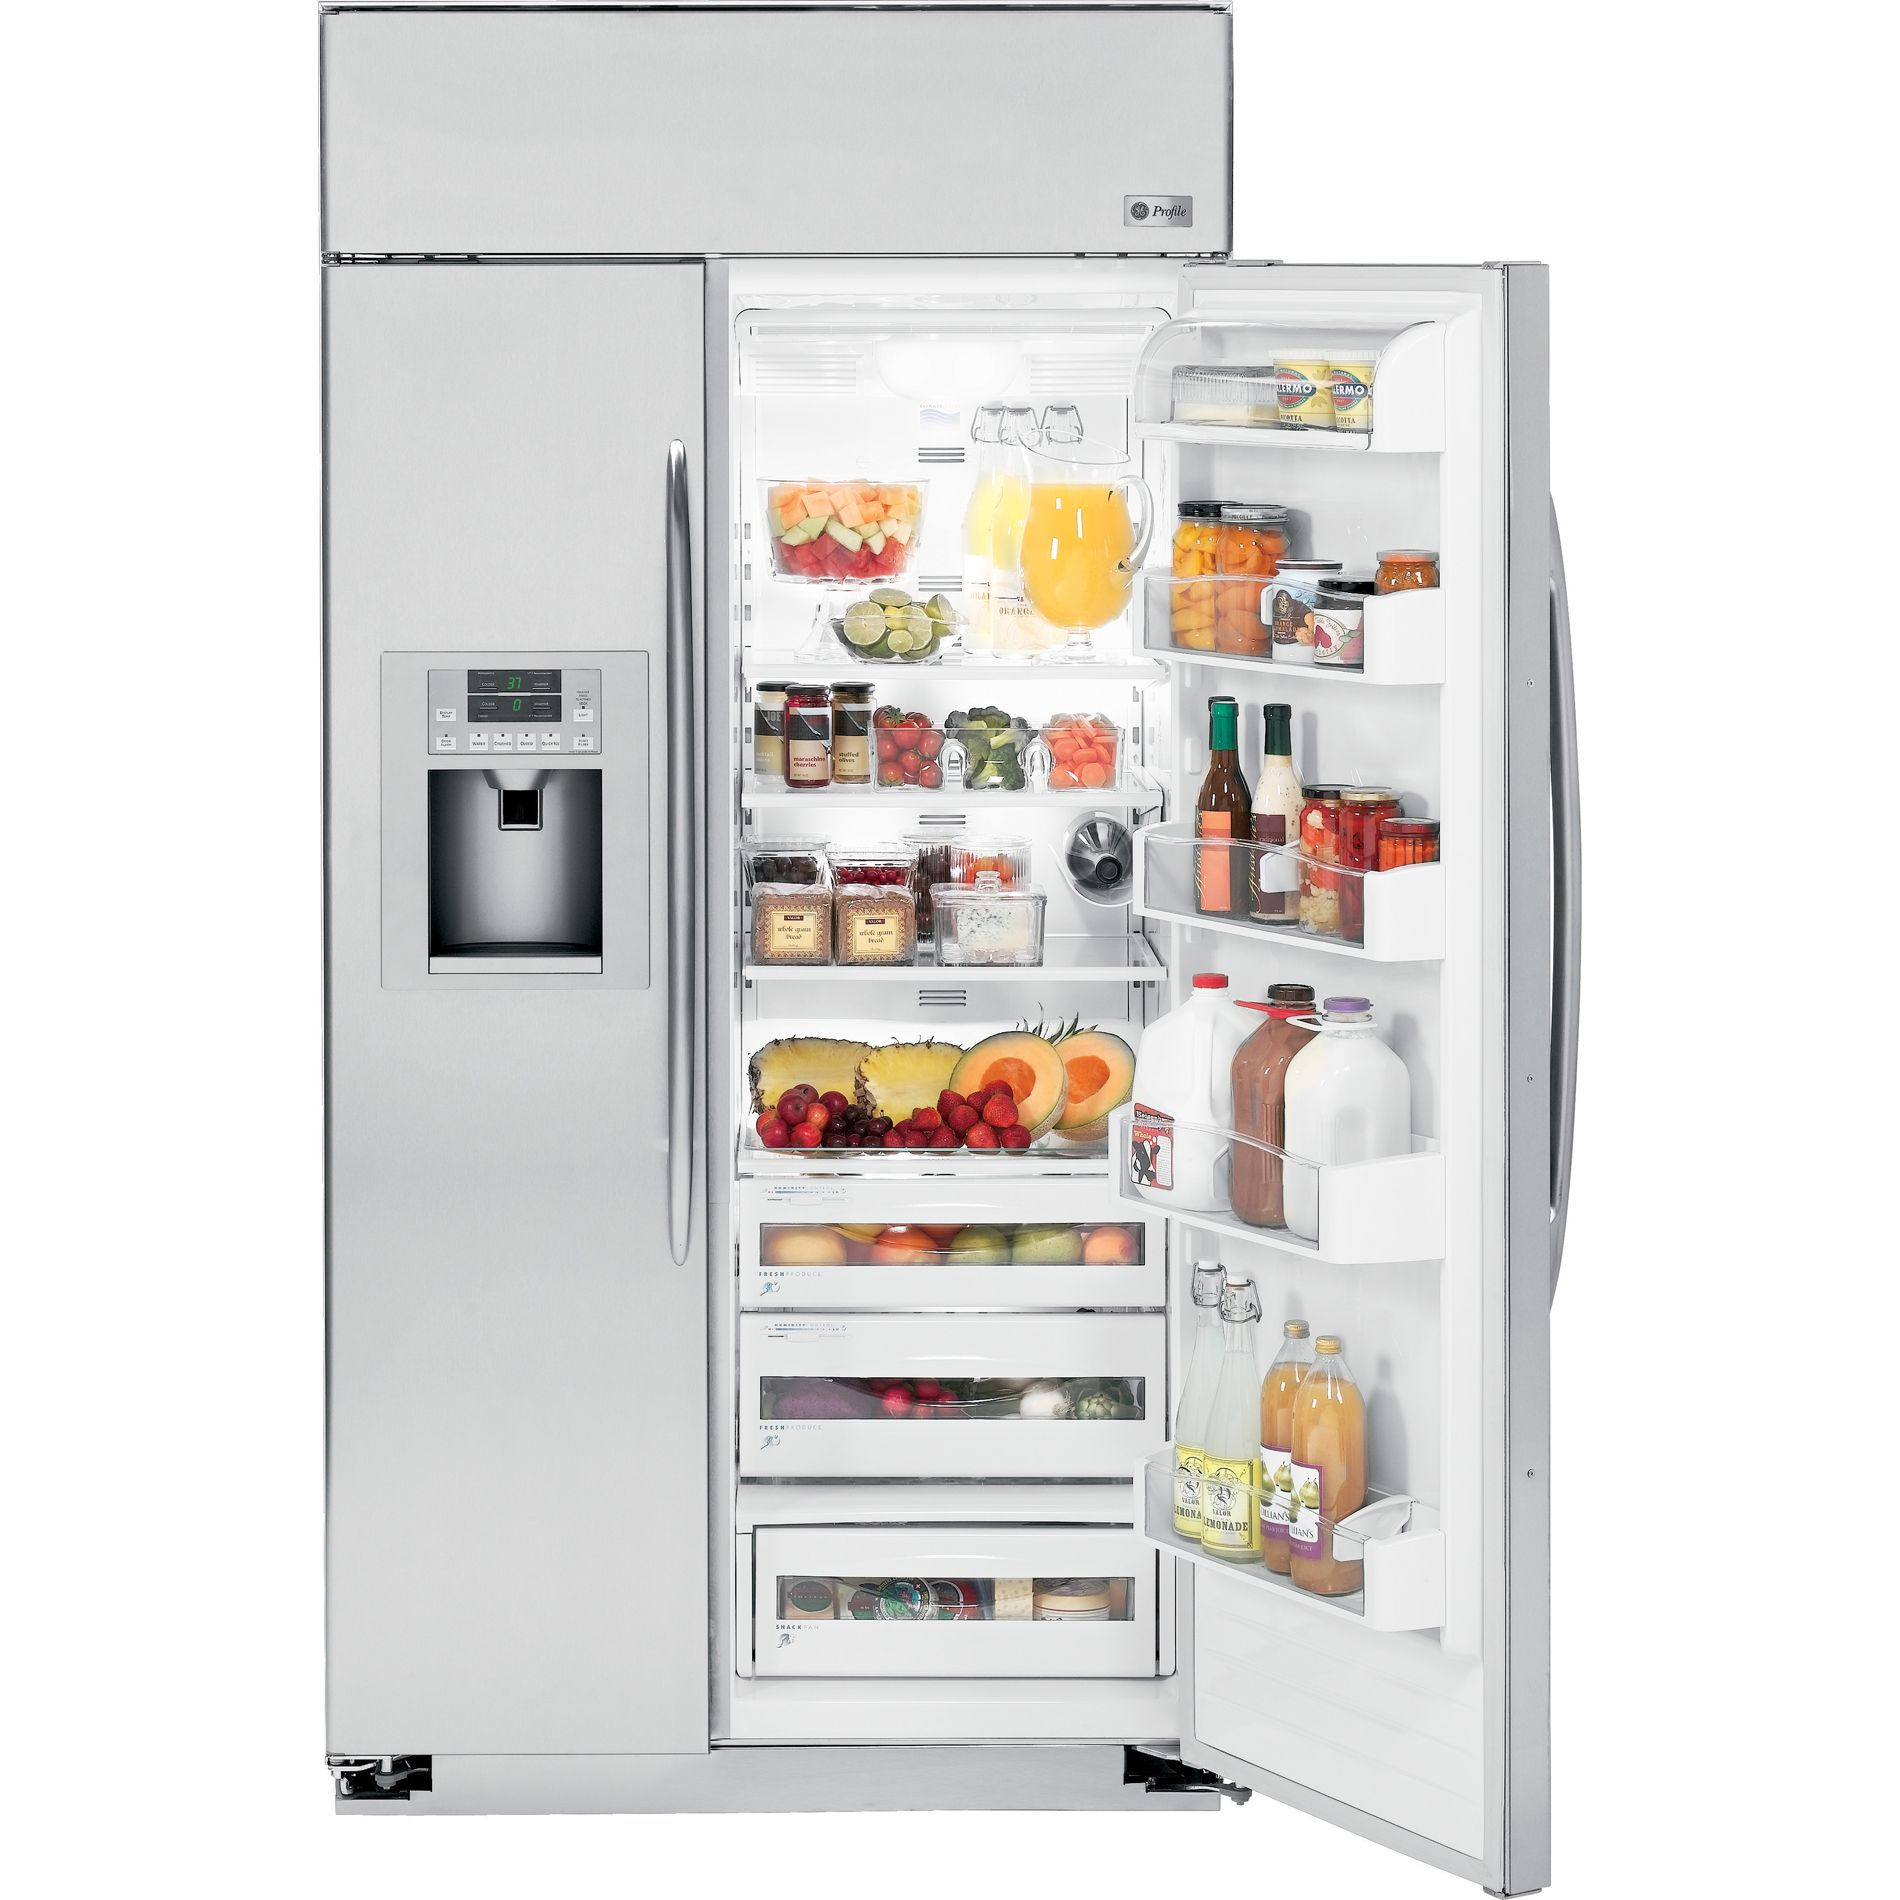 GE Profile™ Series 29.5 cu. ft. Built-In Side-by-Side Refrigerator - Stainless Steel